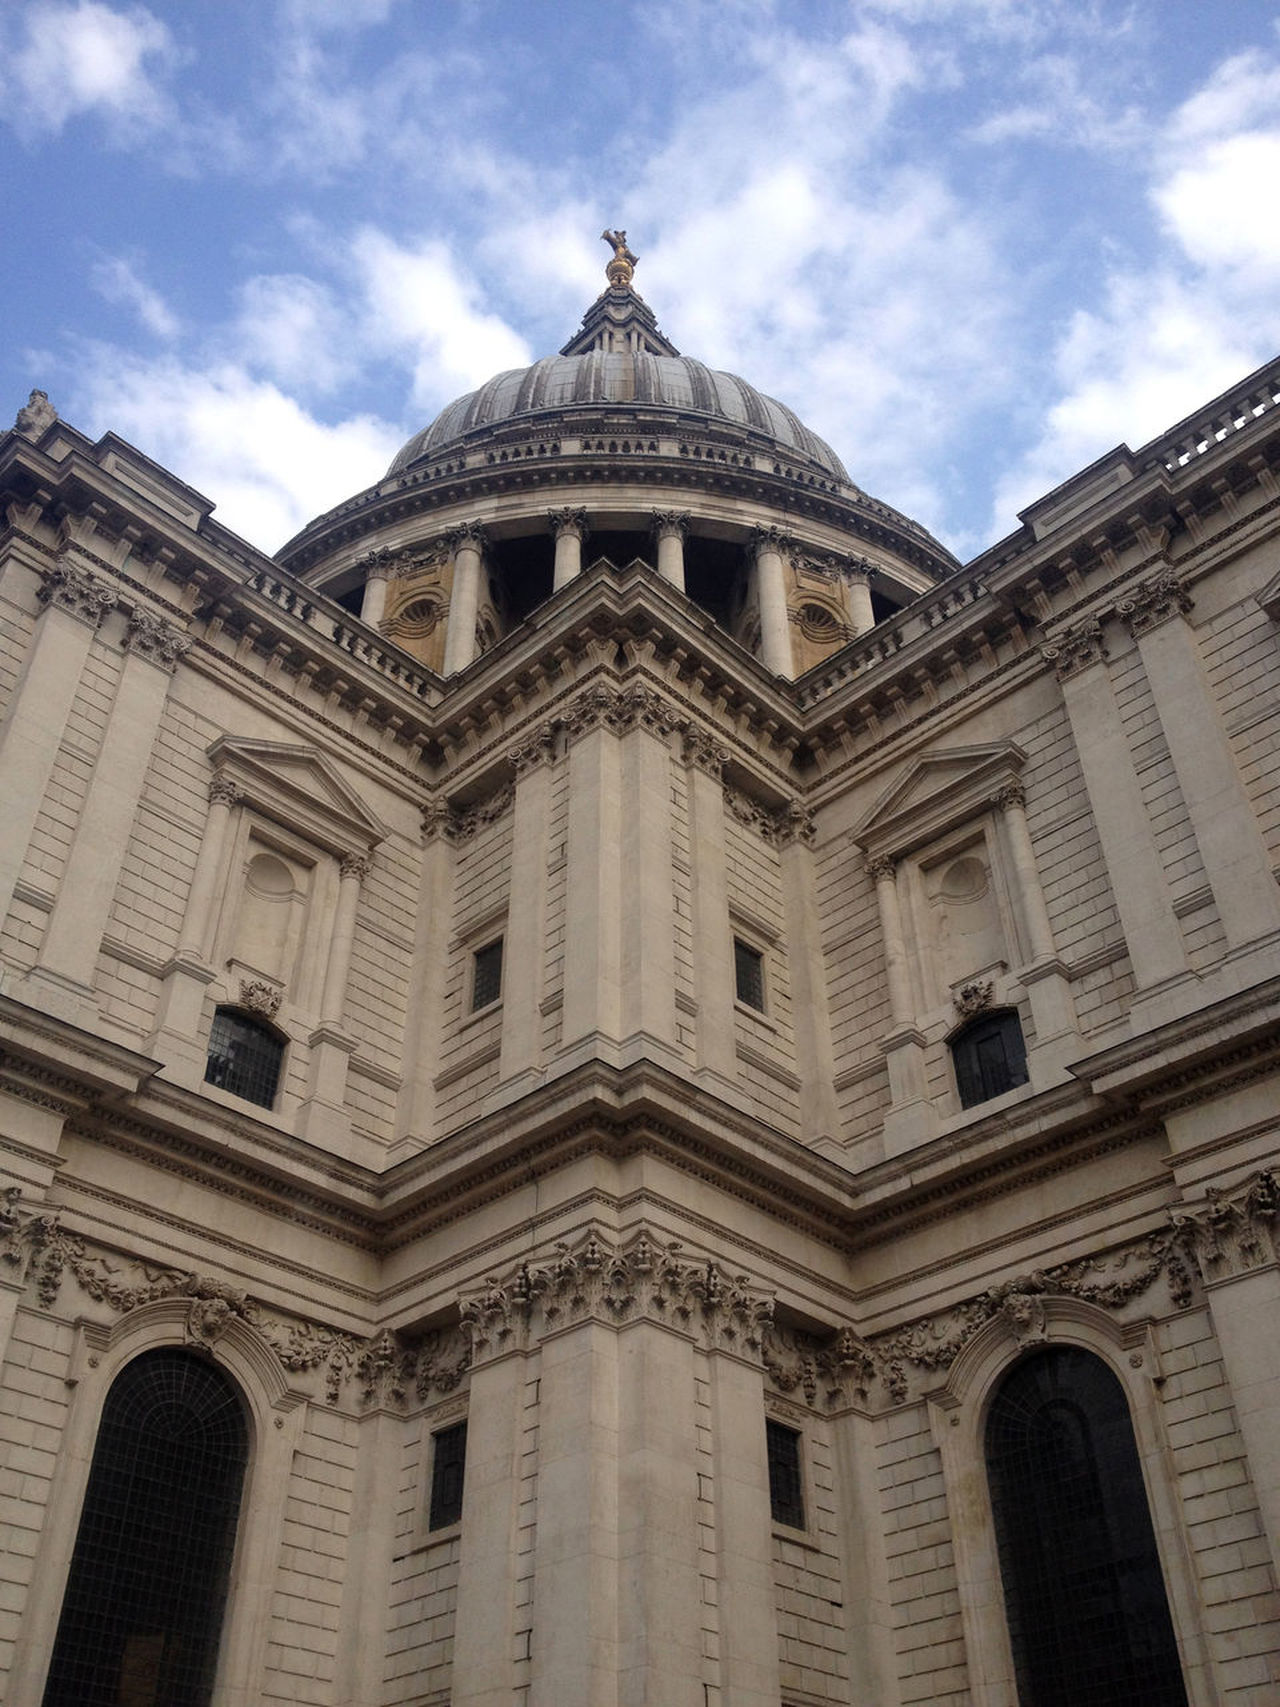 Looking up at St Paul's Cathedral in London, UK. Baroque architecture by Sir Christopher Wren after the Great Fire of London. Architecture Architecture Architecture Facade Architecture Photography Architecturelovers Architecturephotography Architectureporn Building Exterior Built Structure City Of London City Of London Tourism Cloud - Sky London London Architecture LONDON❤ Low Angle View No People Outdoors Pediment St Paul's Cathedral St Paul's Cathedral London St Pauls Cathedral